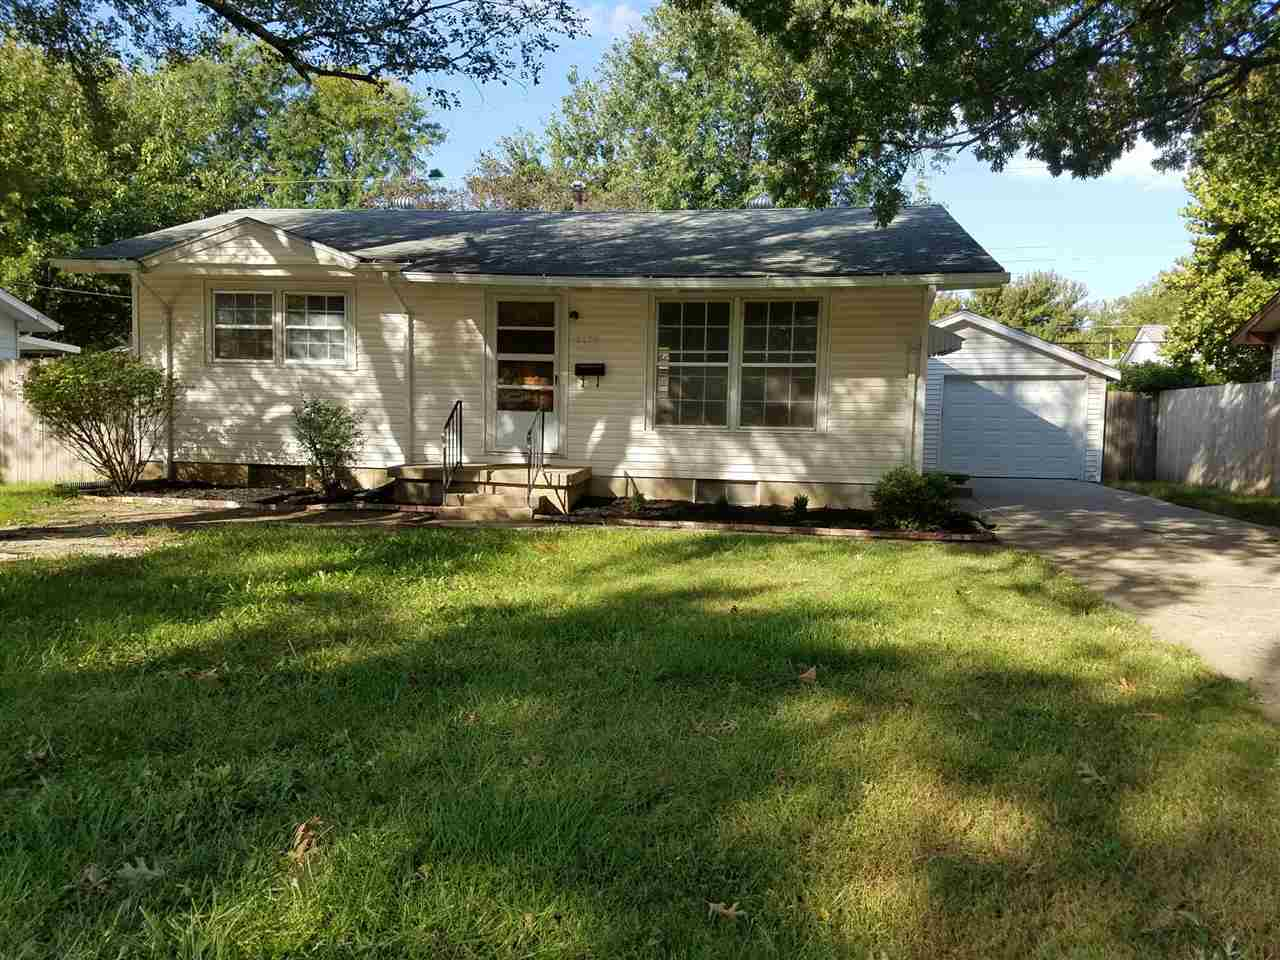 3139 S Saint Paul Ave, Wichita, KS 67217